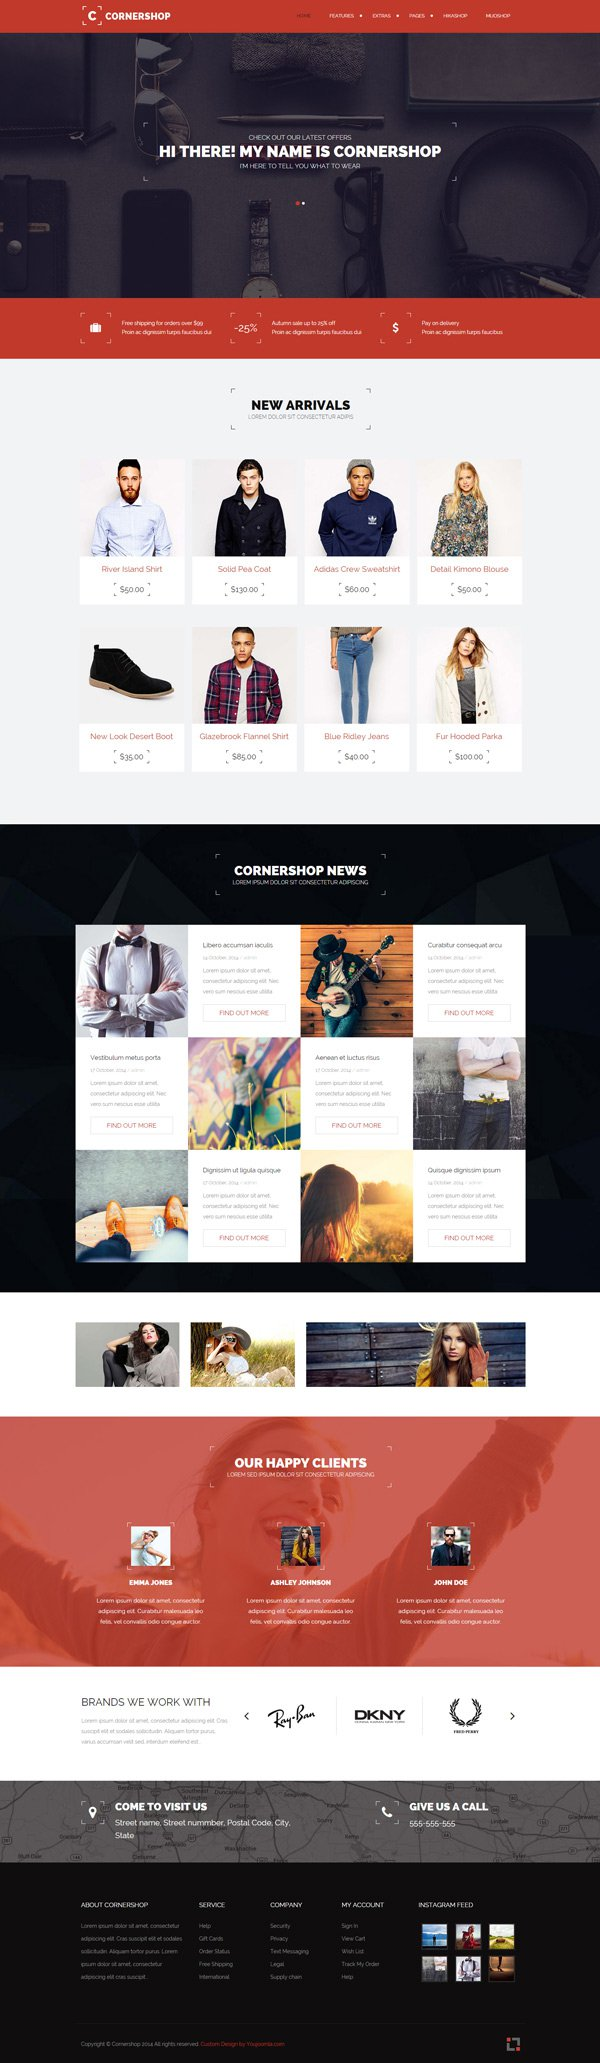 Cornershop - Responsive Mijoshop and Hikashop Joomla Template